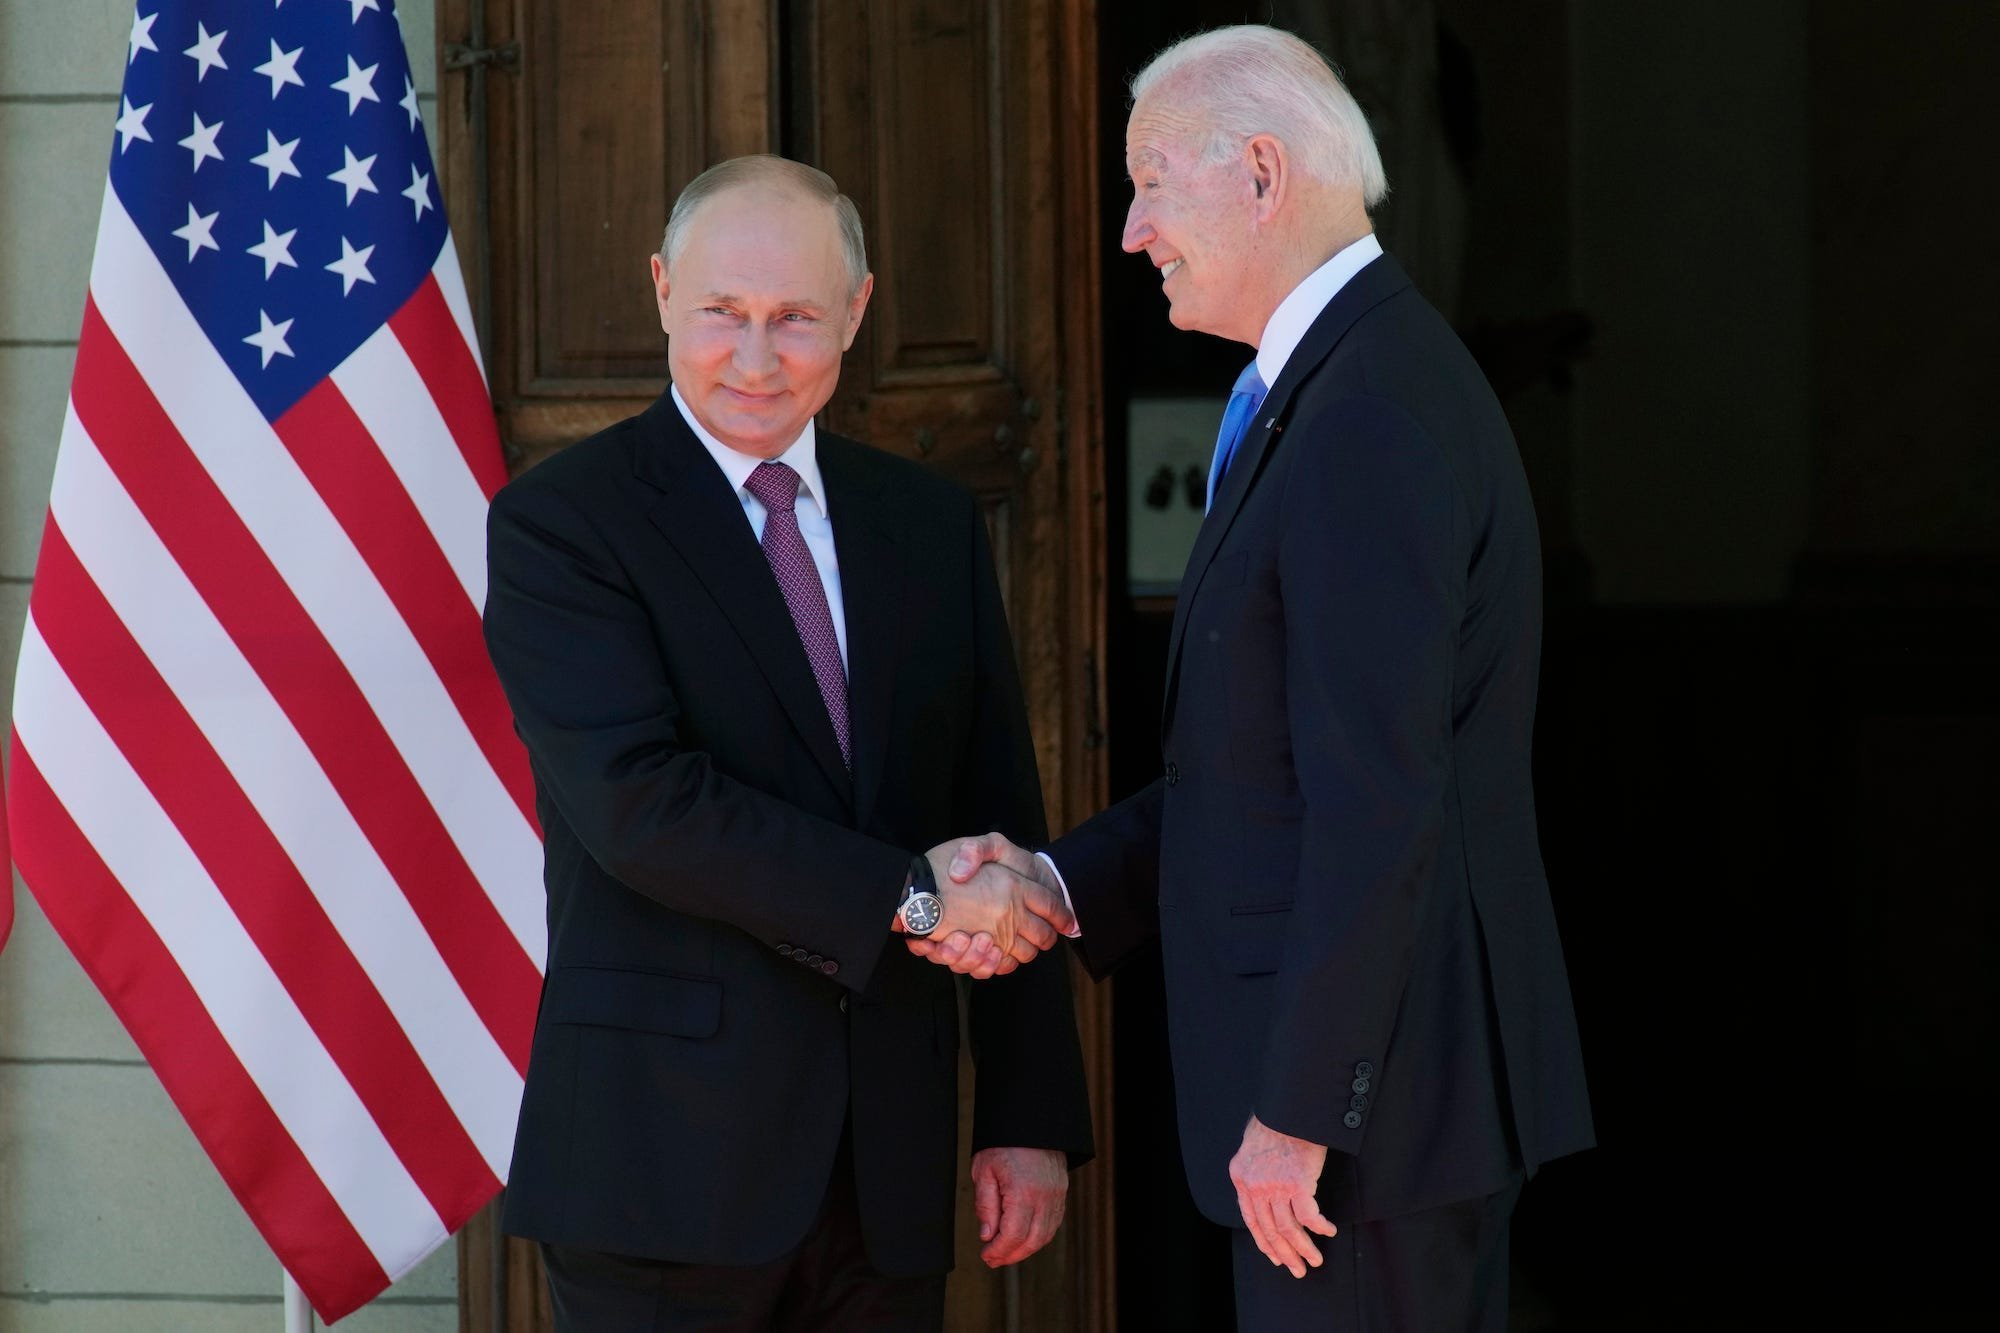 How Biden planned Putin summit to avoid past mistakes by Trump & other leaders